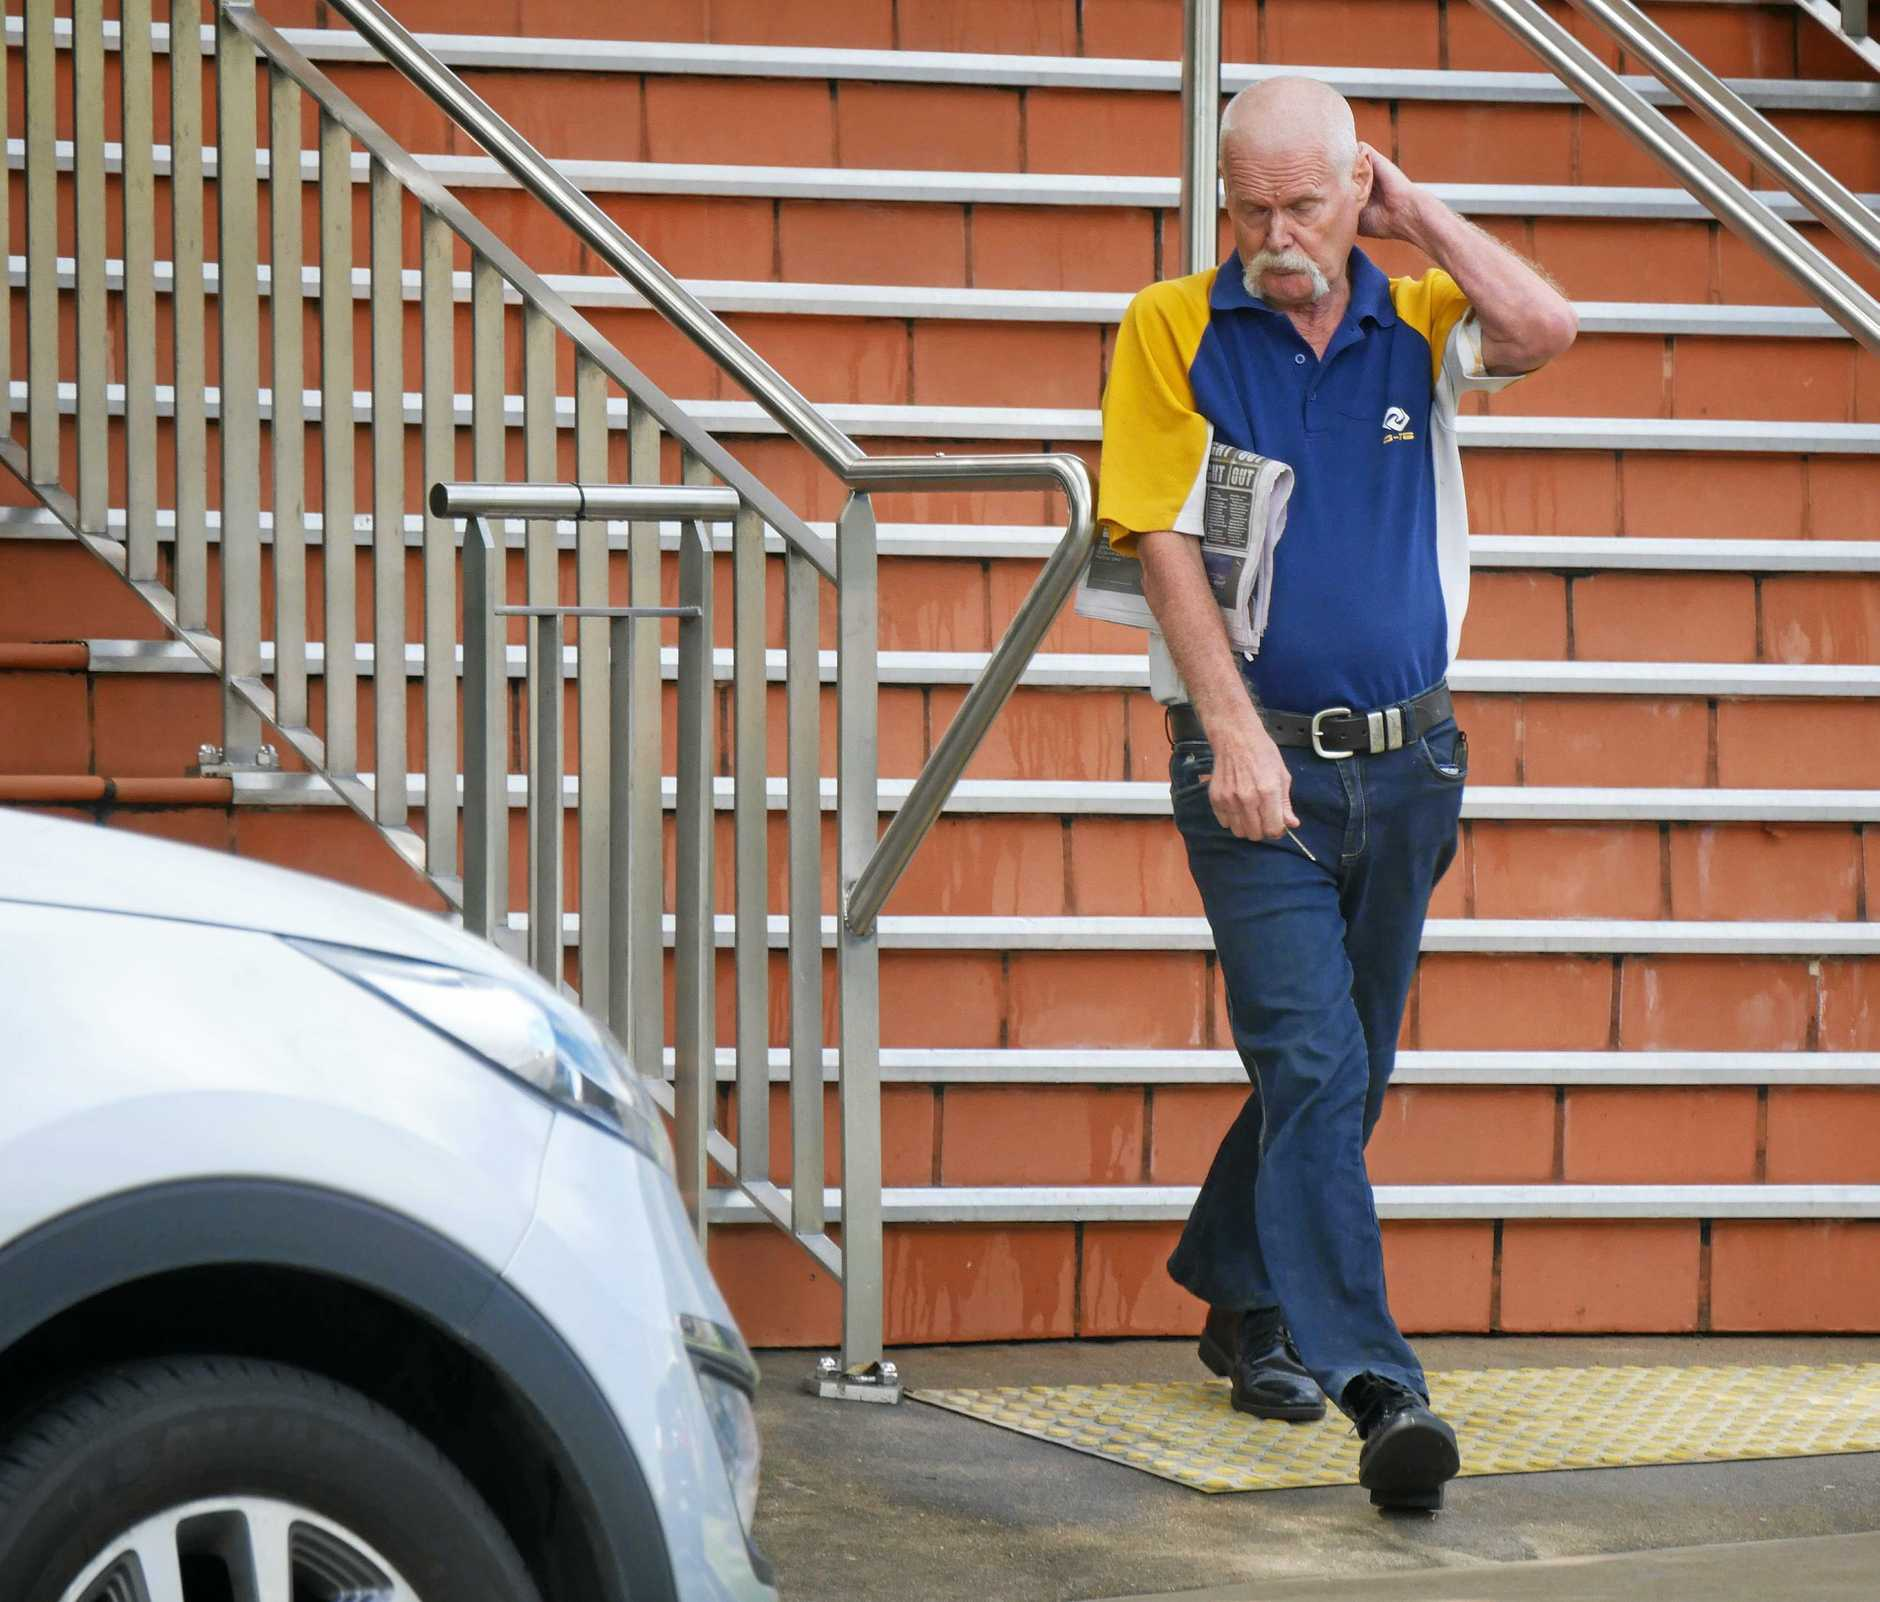 Kerry Eaton Ezzy, 65, outside Hervey Bay Magistrates Court.